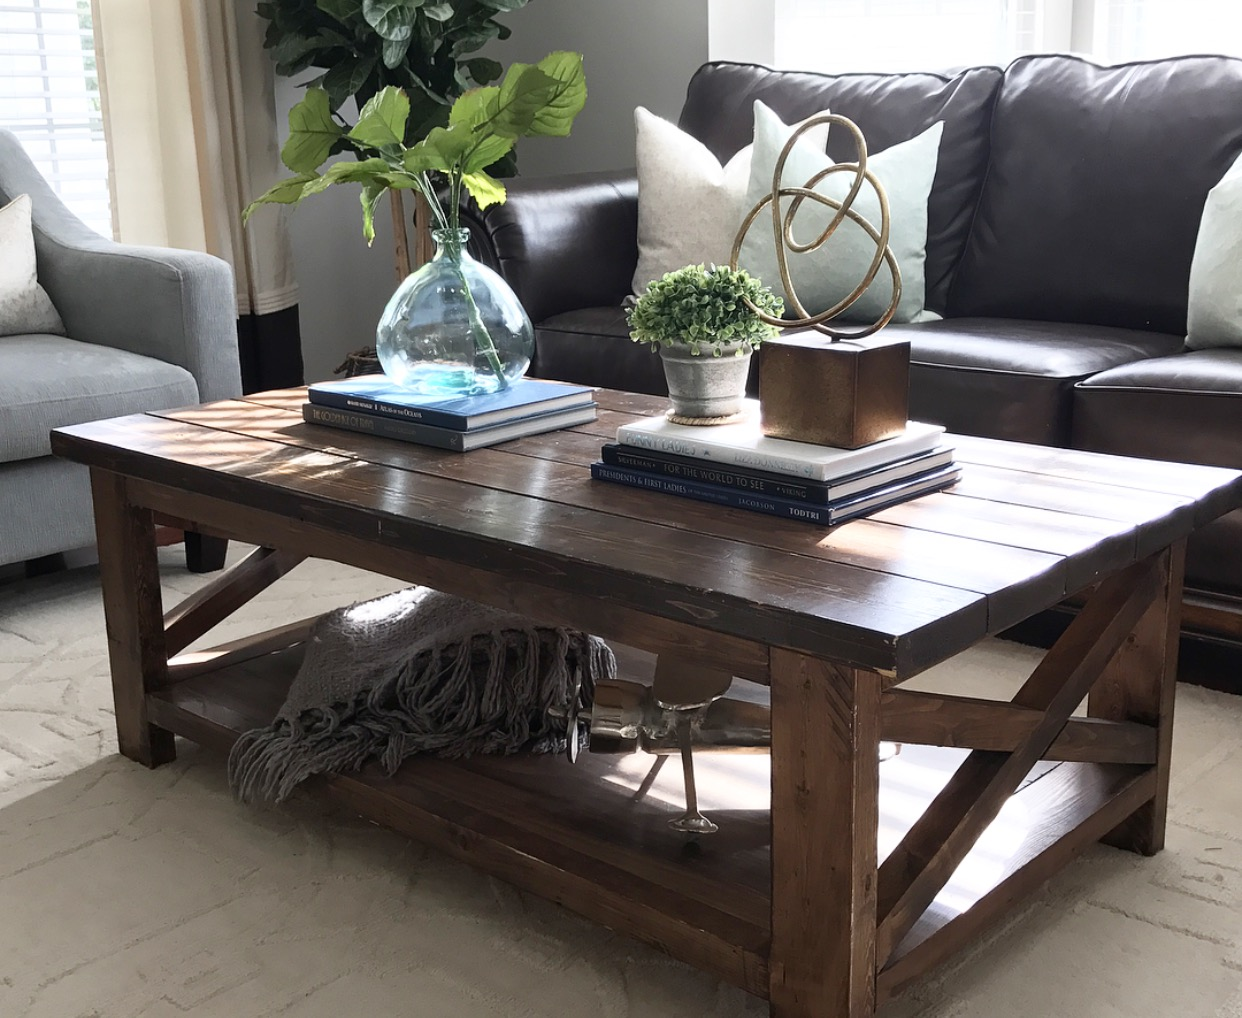 Coffee Table Styling 2